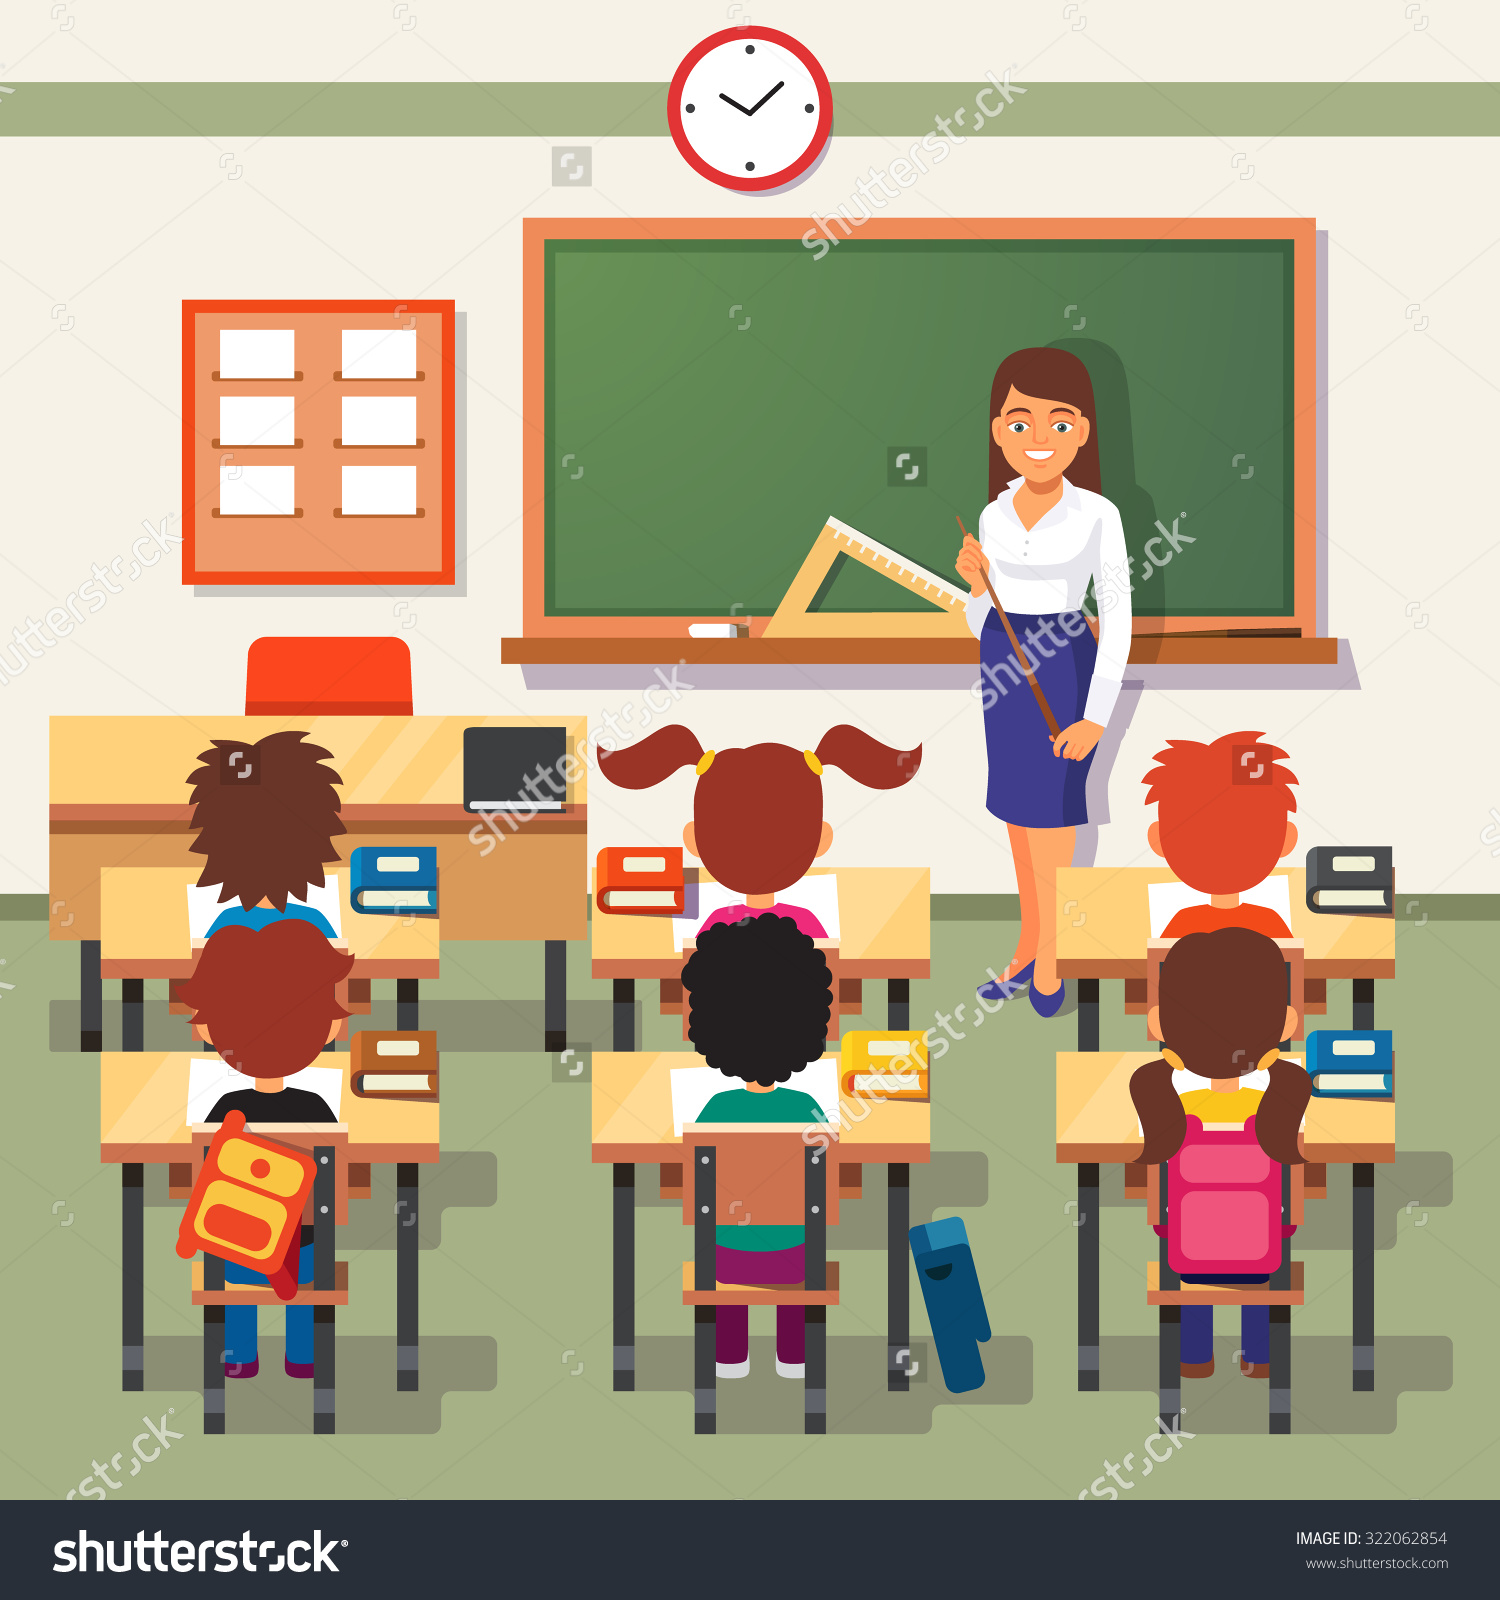 Moving clipart classroom Animated Collection It clipart